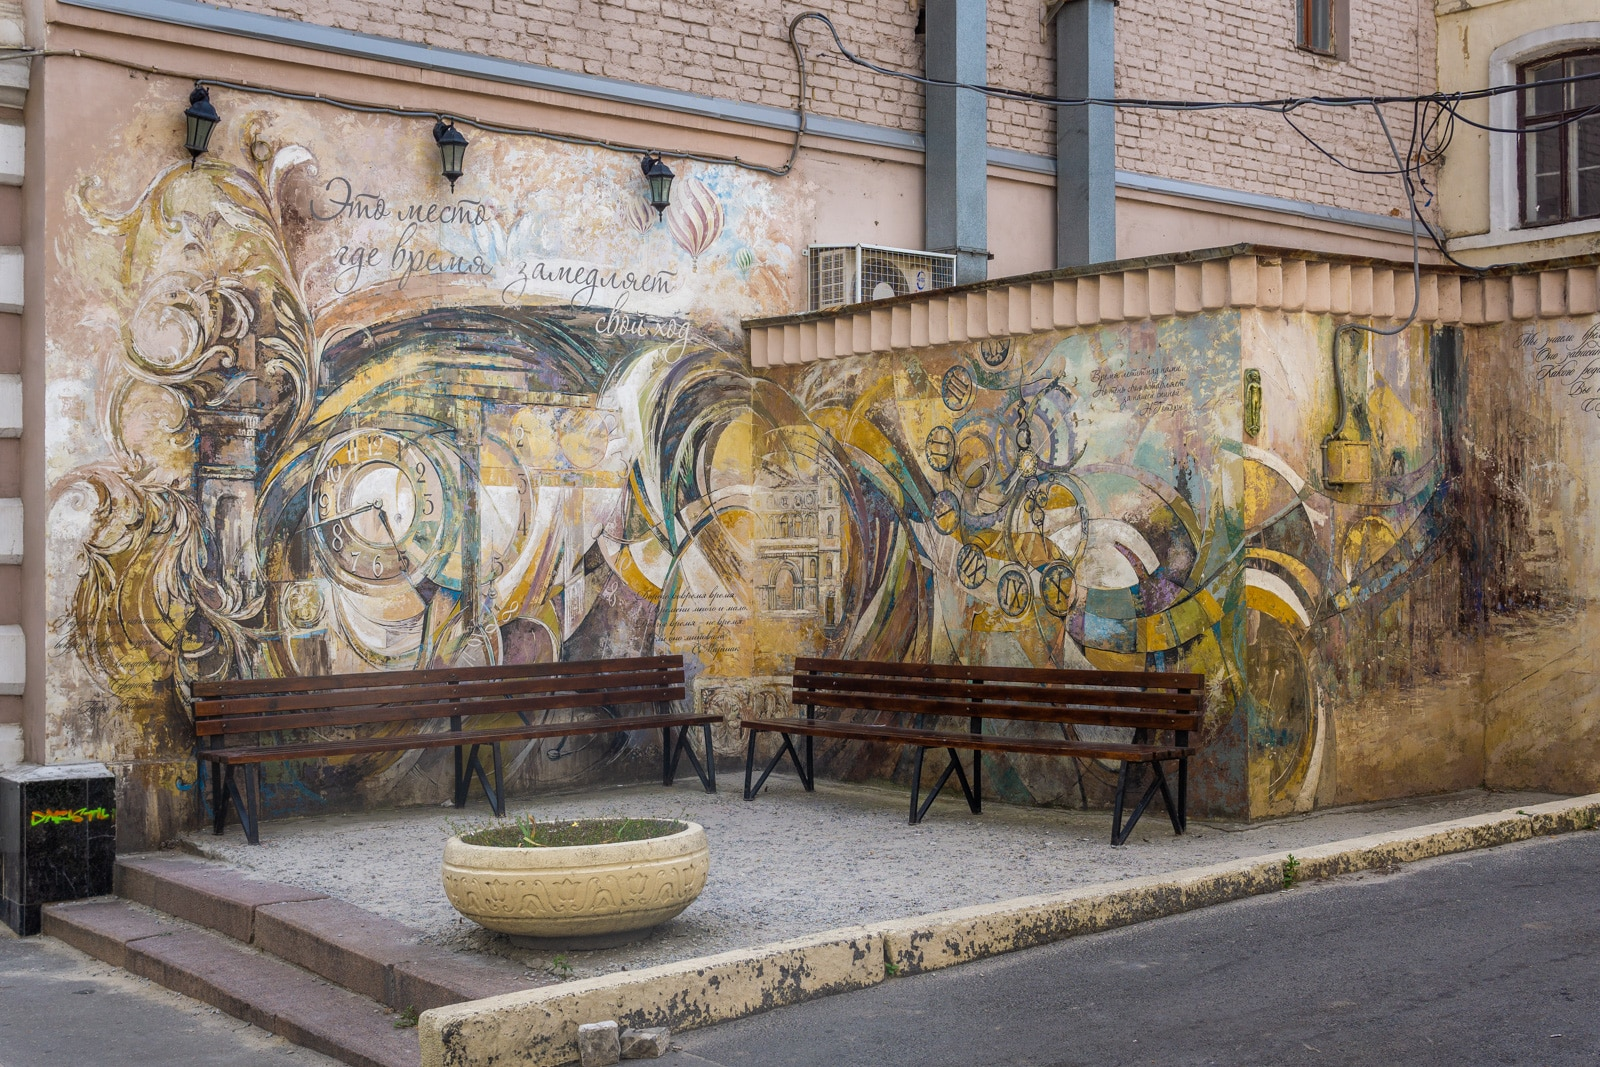 Street art in Kharkiv, Ukraine